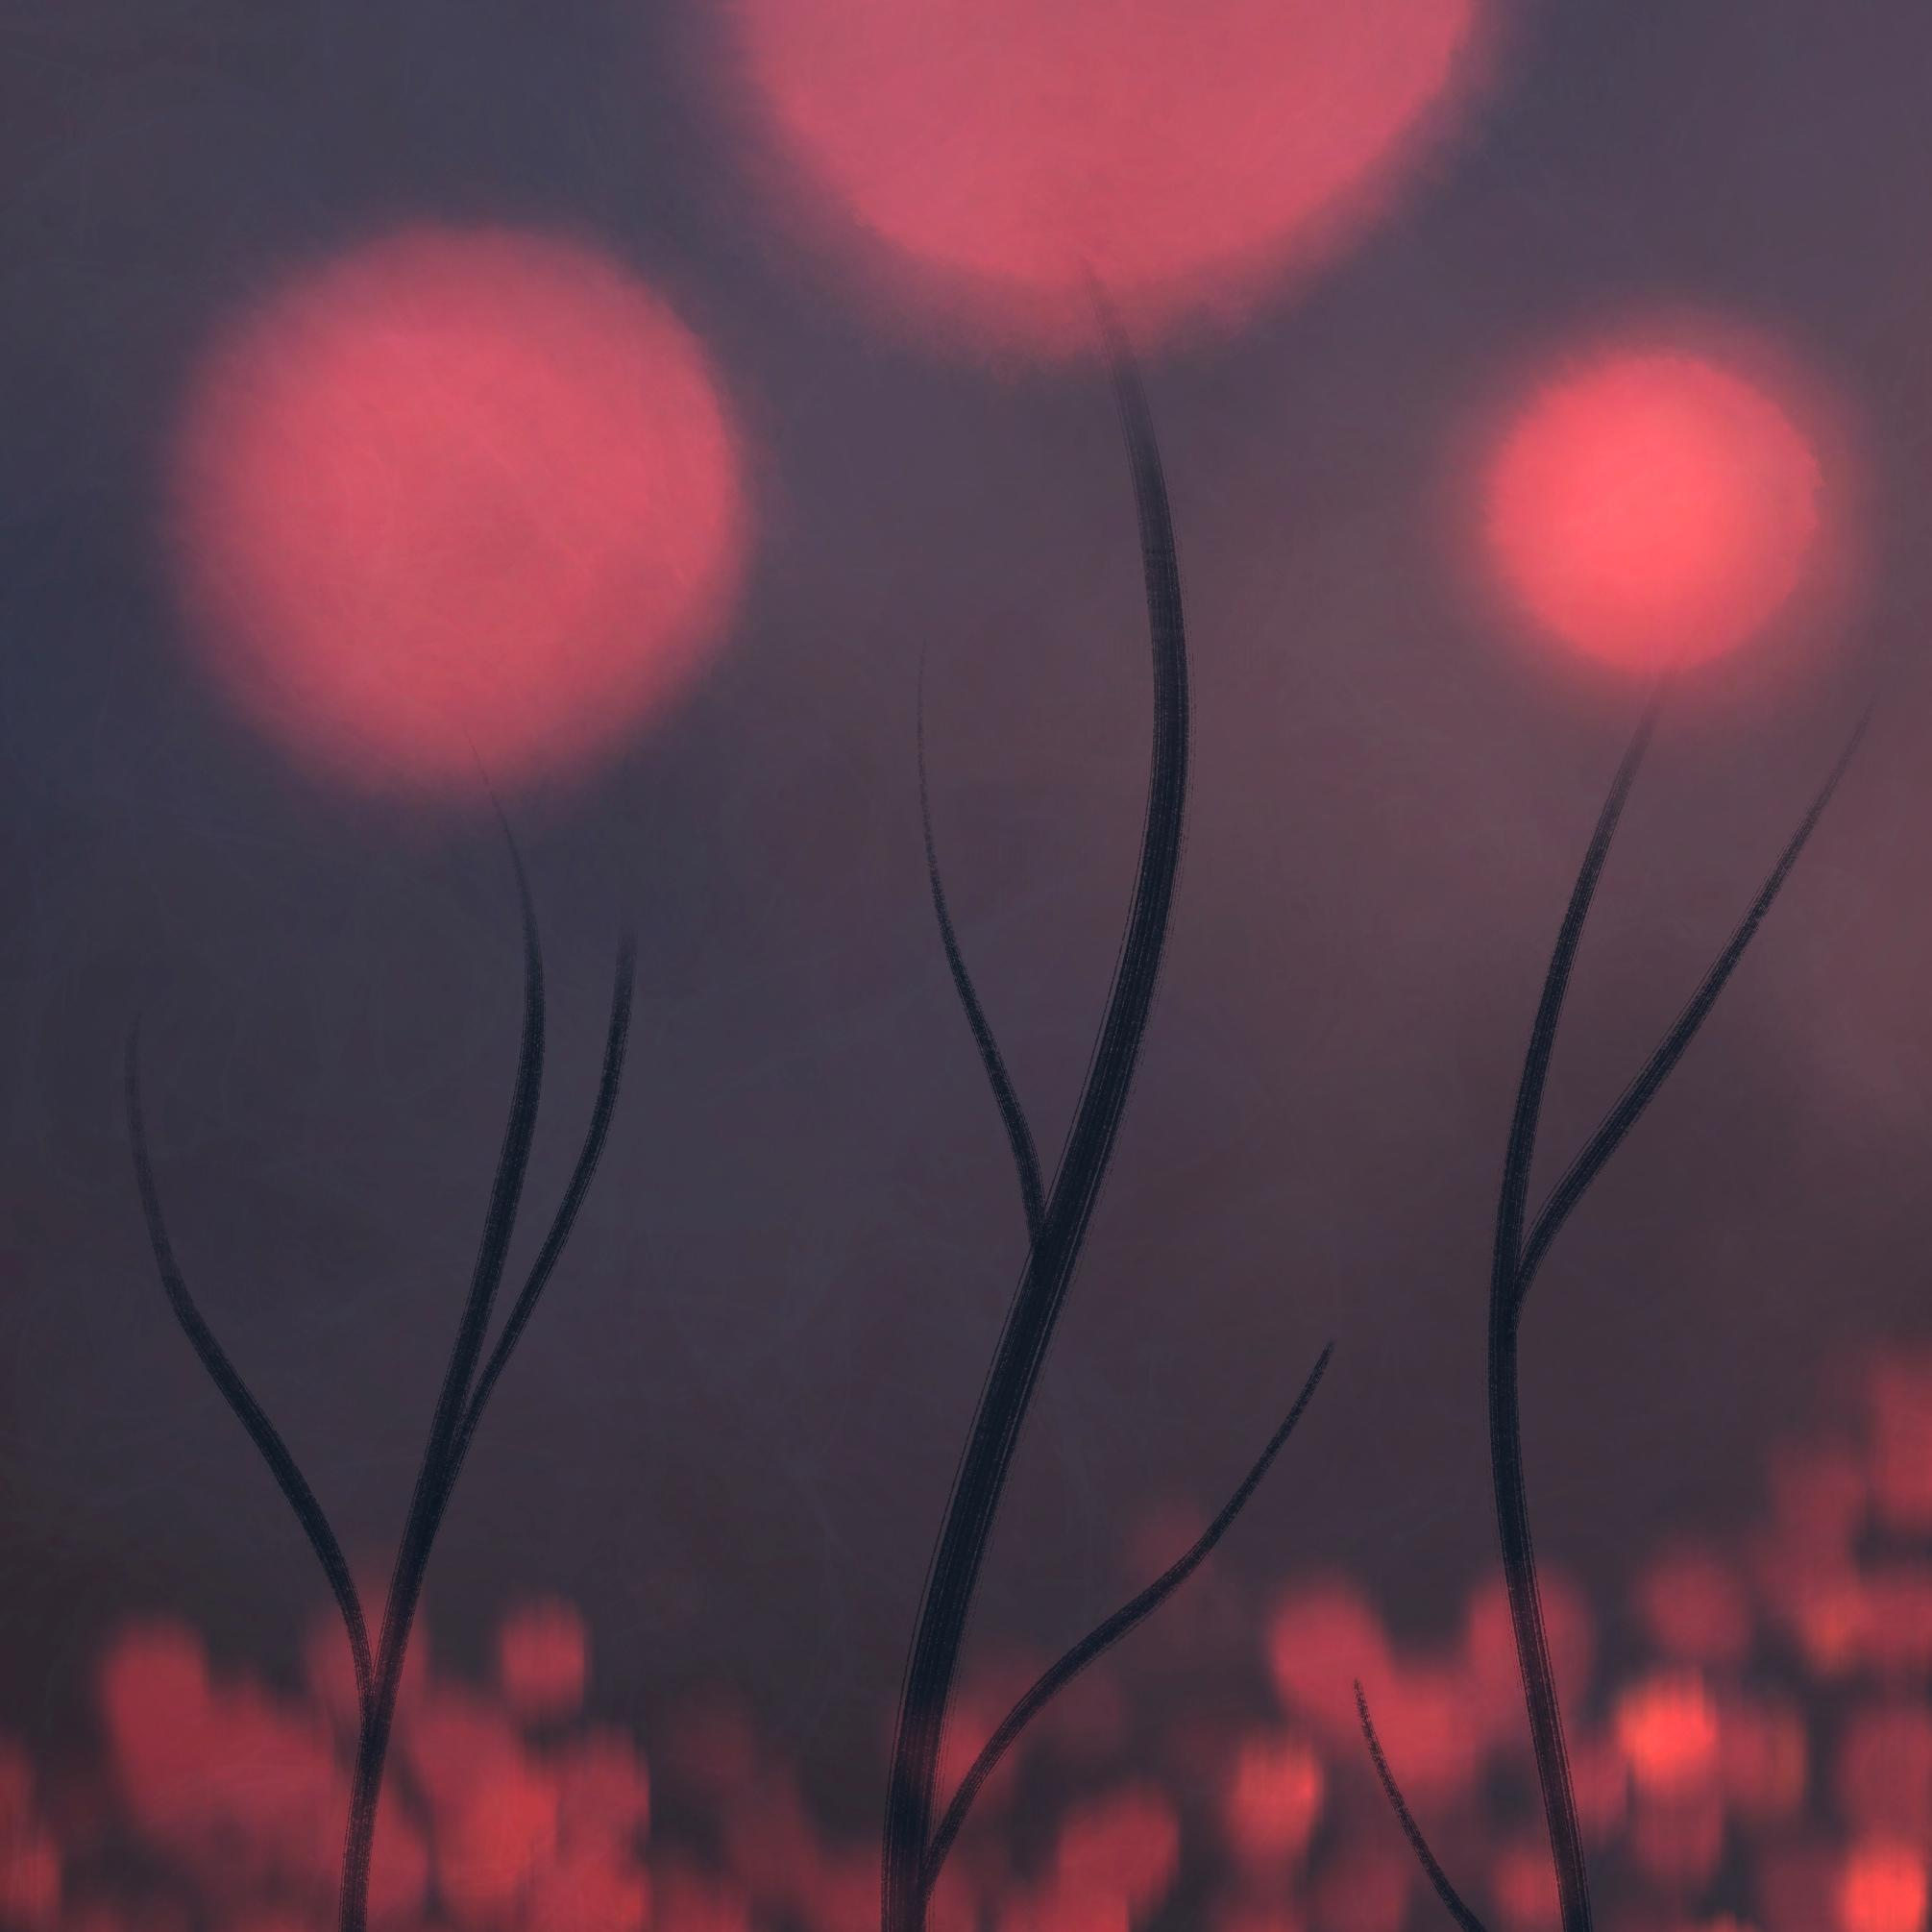 An abstract digital painting by Lily Bourne titled Ember Flowers. A red themed artwork with red ball flowers shown at dusk.